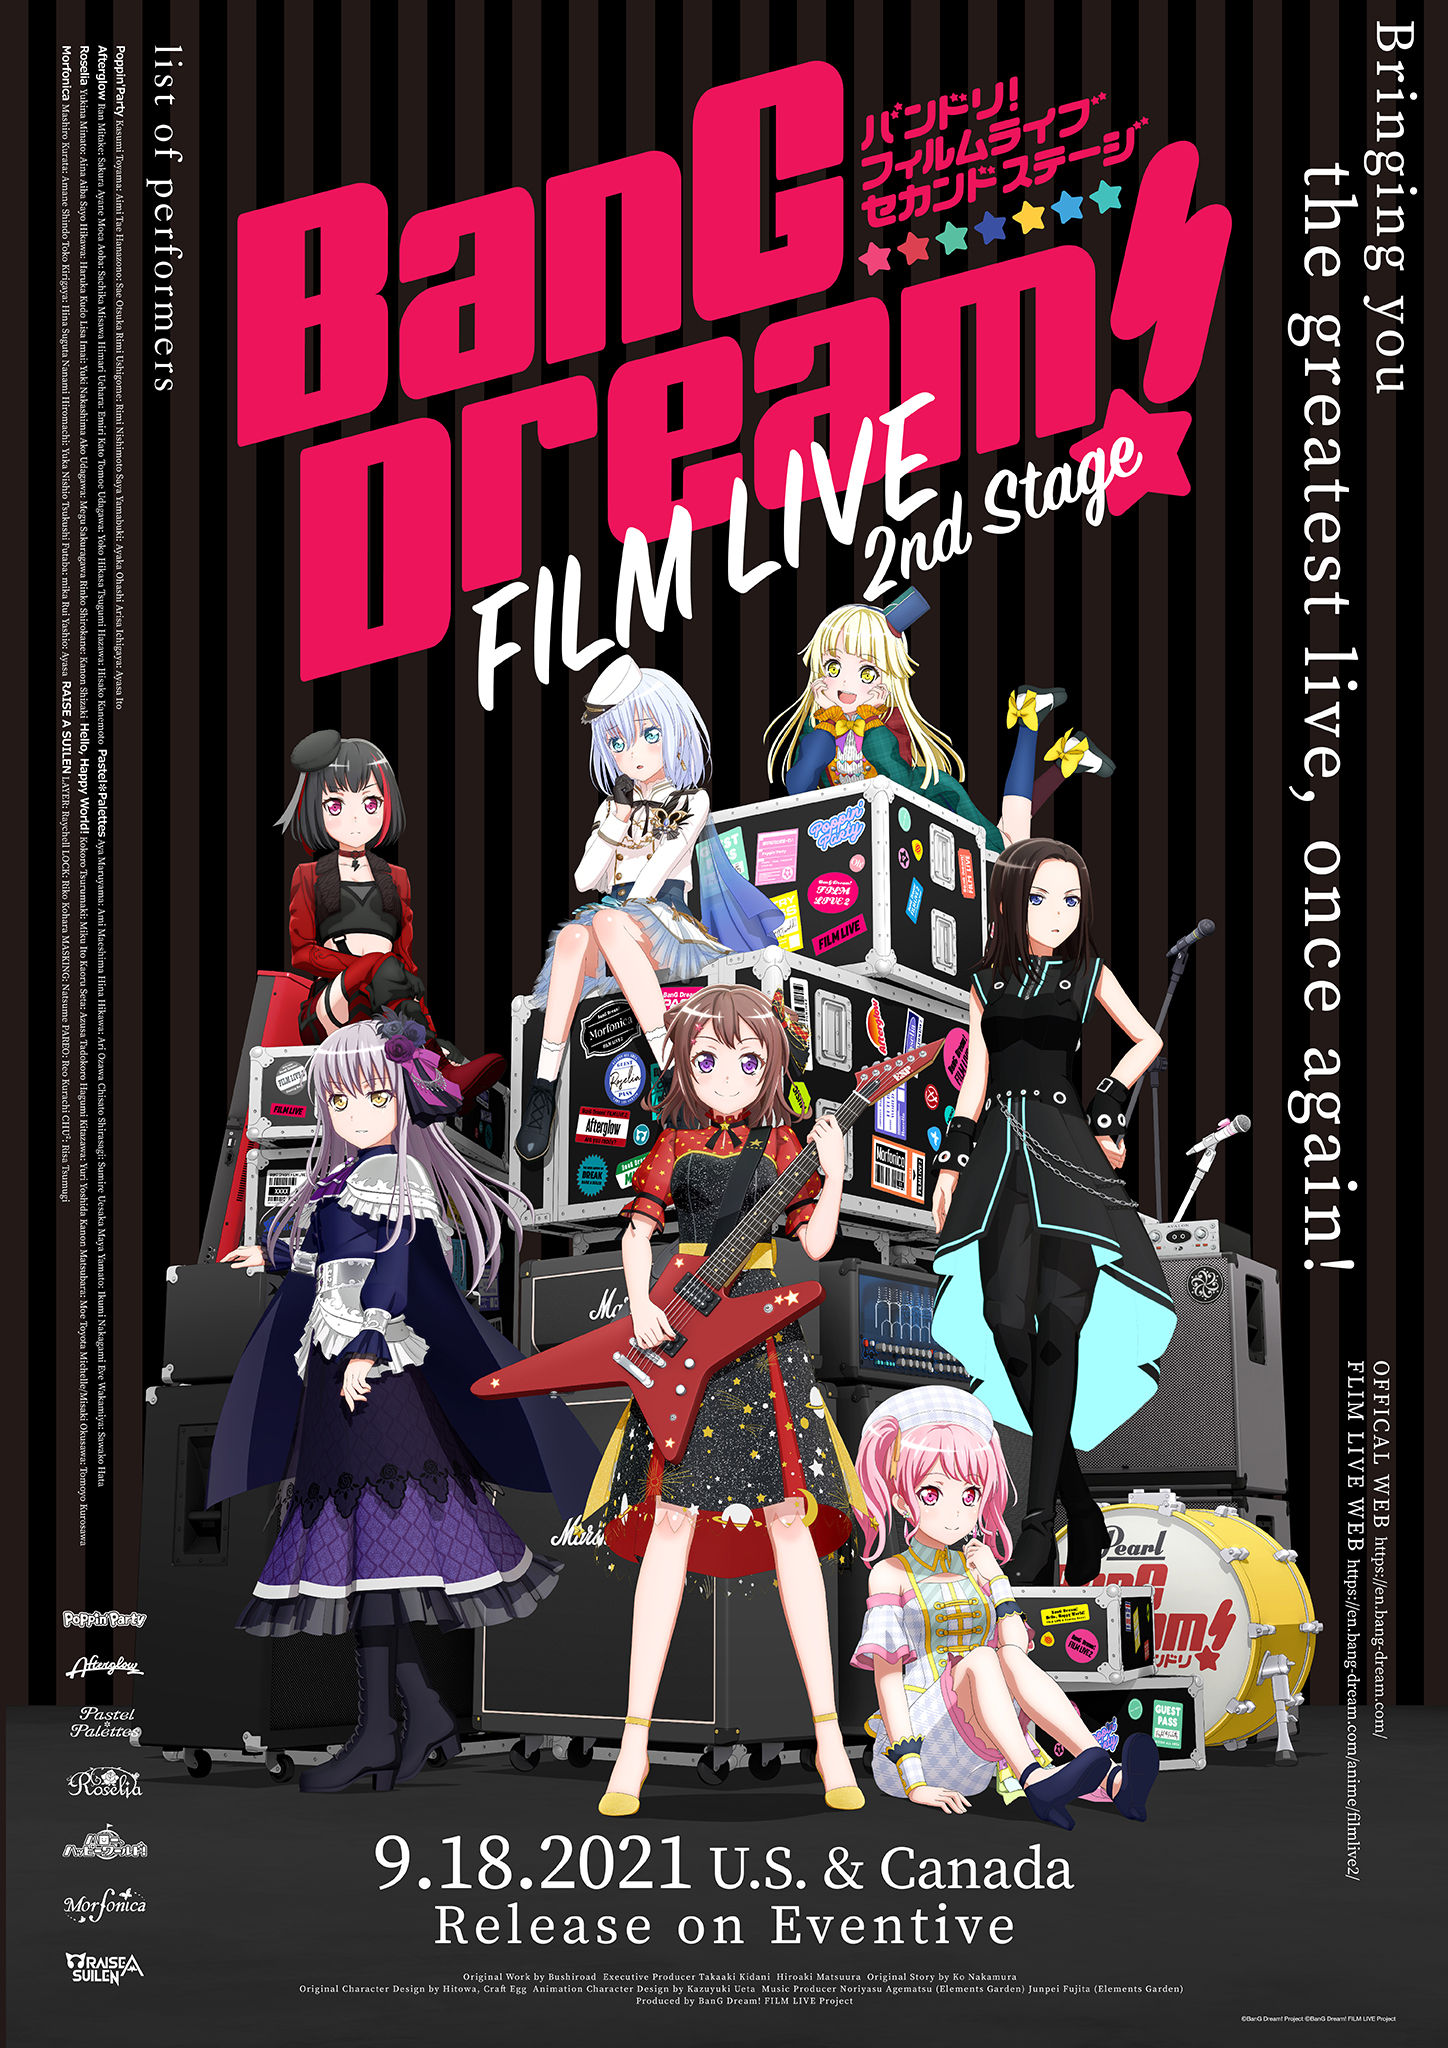 bang-dream-film-live-2nd-stage BanG Dream! FILM LIVE 2nd Stage Movie/Concert Review - Don't Miss Out On This Special Show!